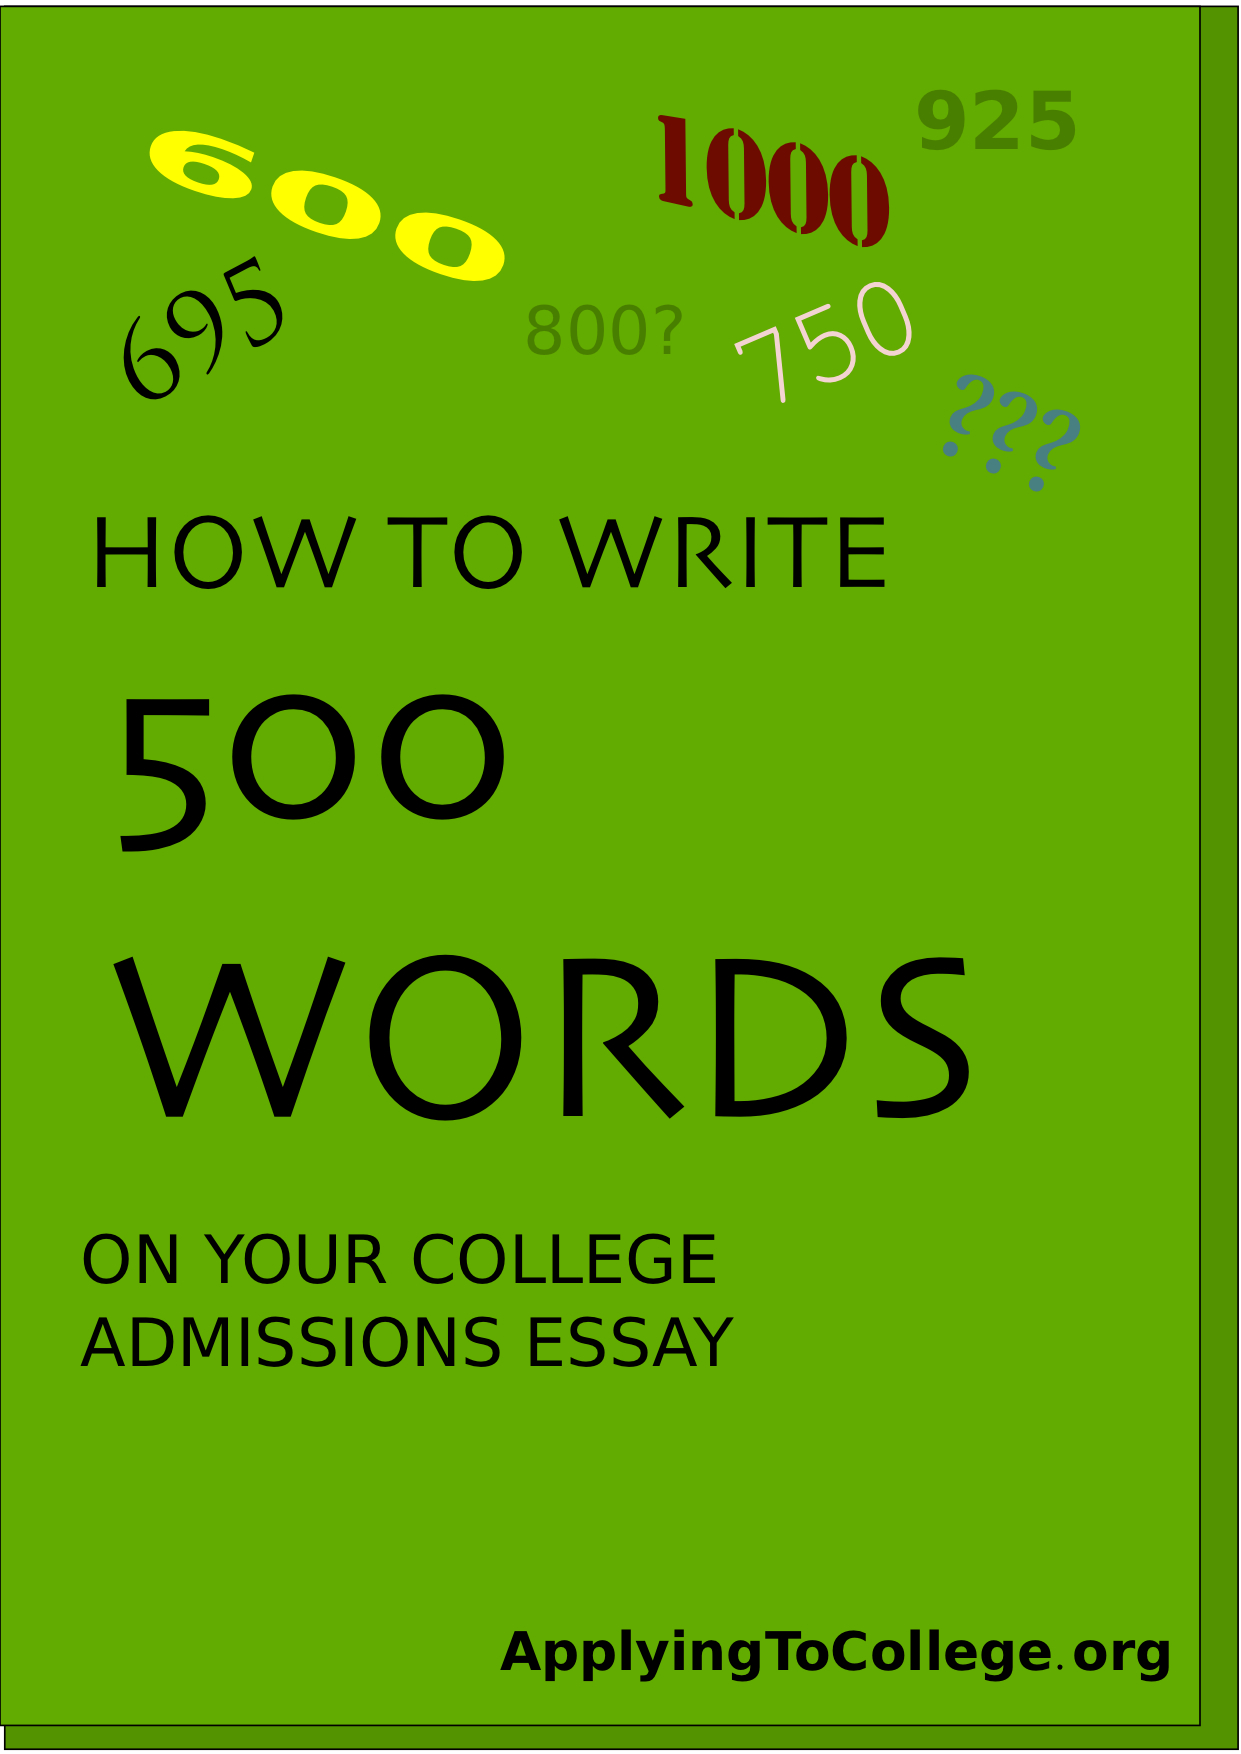 the word essay originally meant